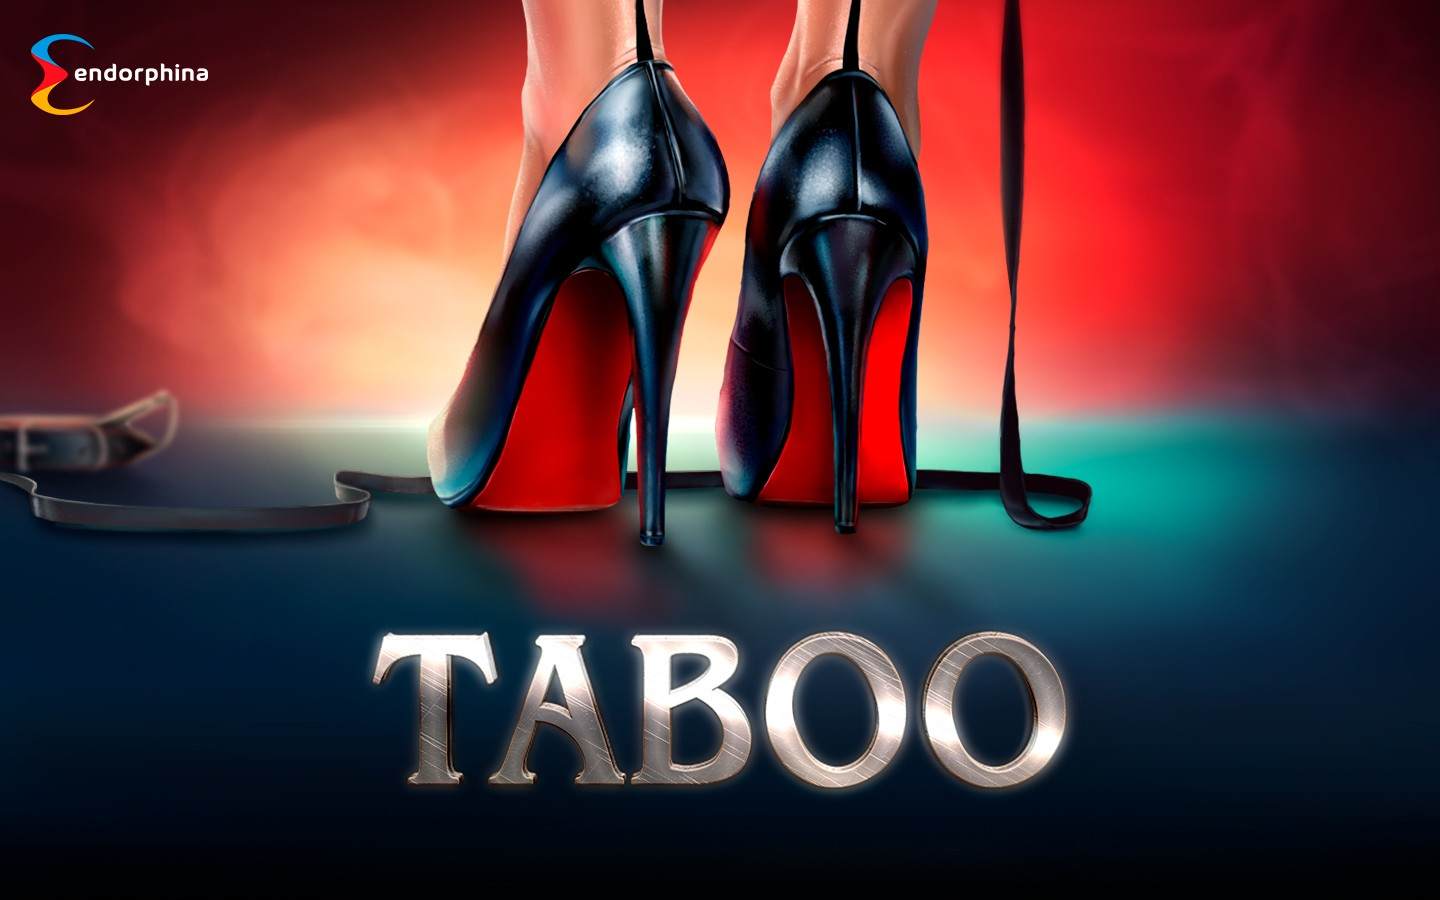 Taboo slot game by Endorphina